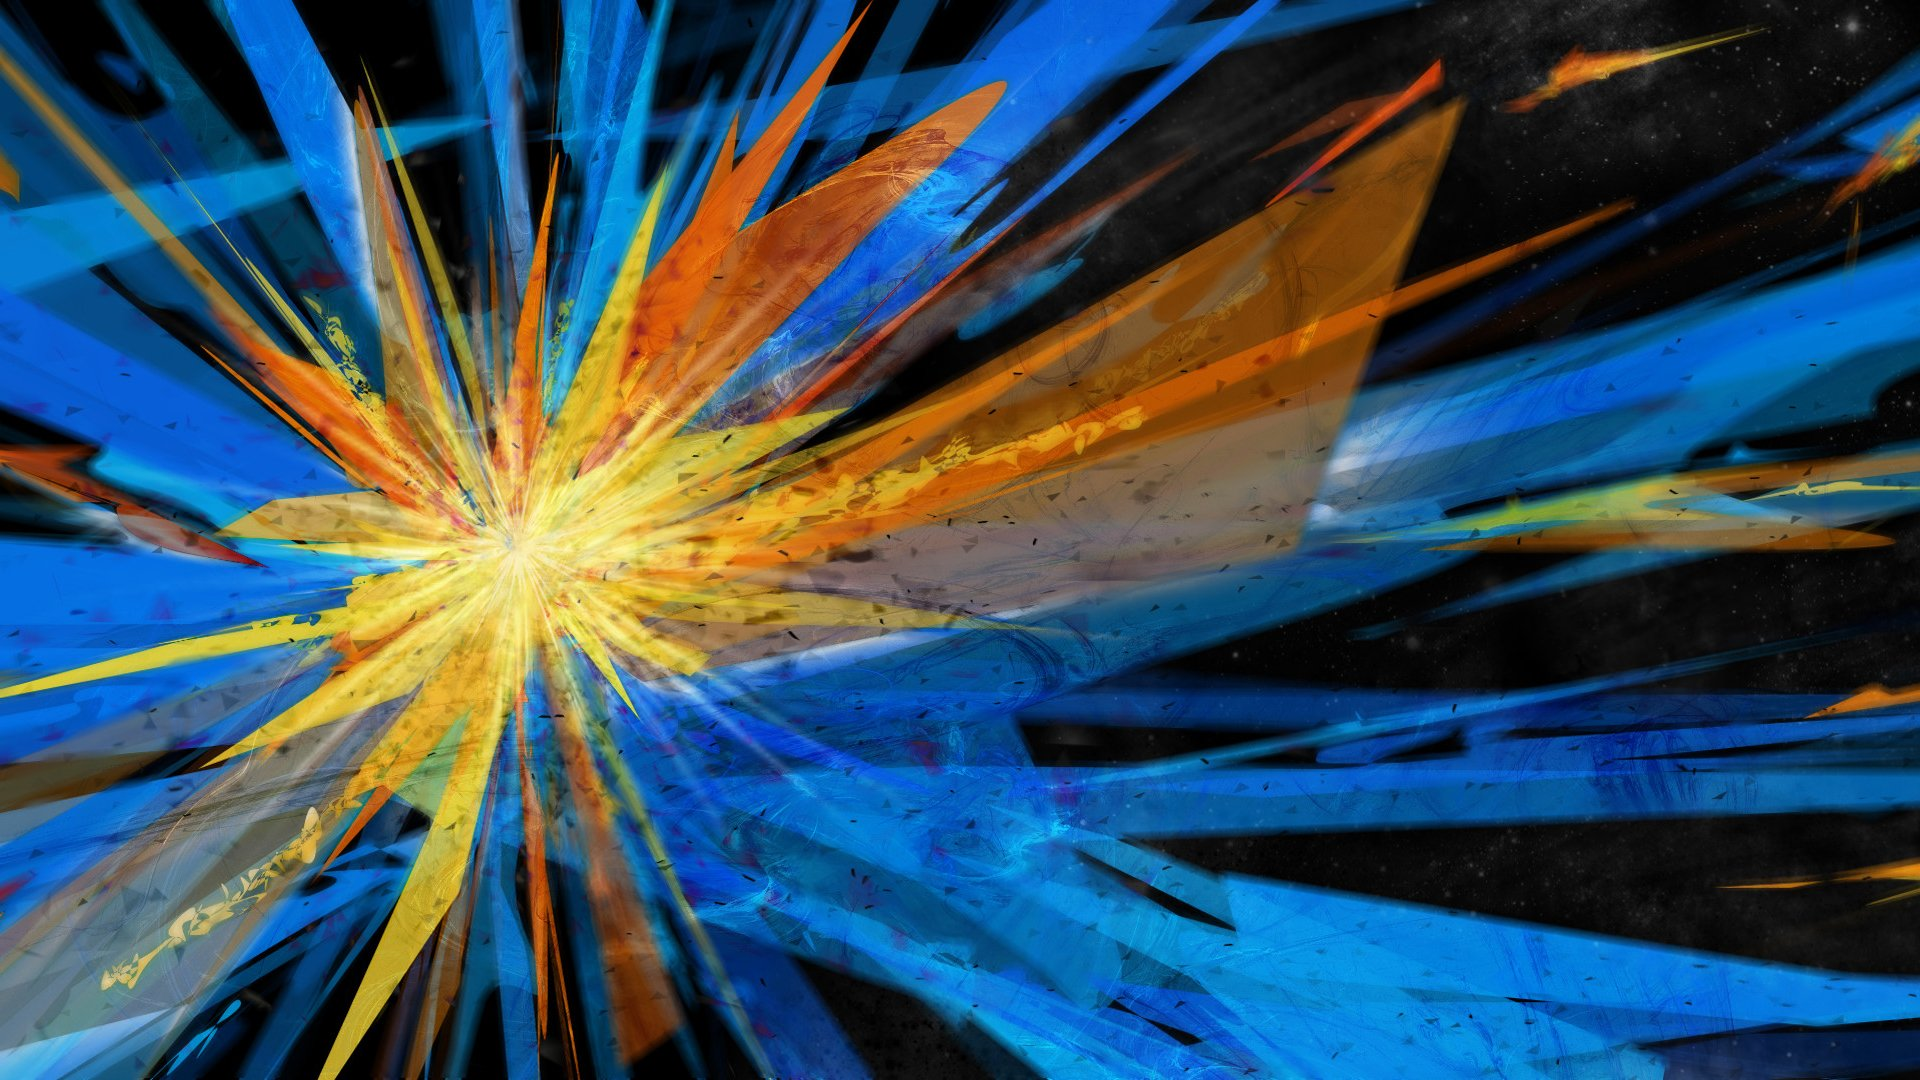 Blue And Orange Background: Colorful Explosion Full HD Wallpaper And Background Image